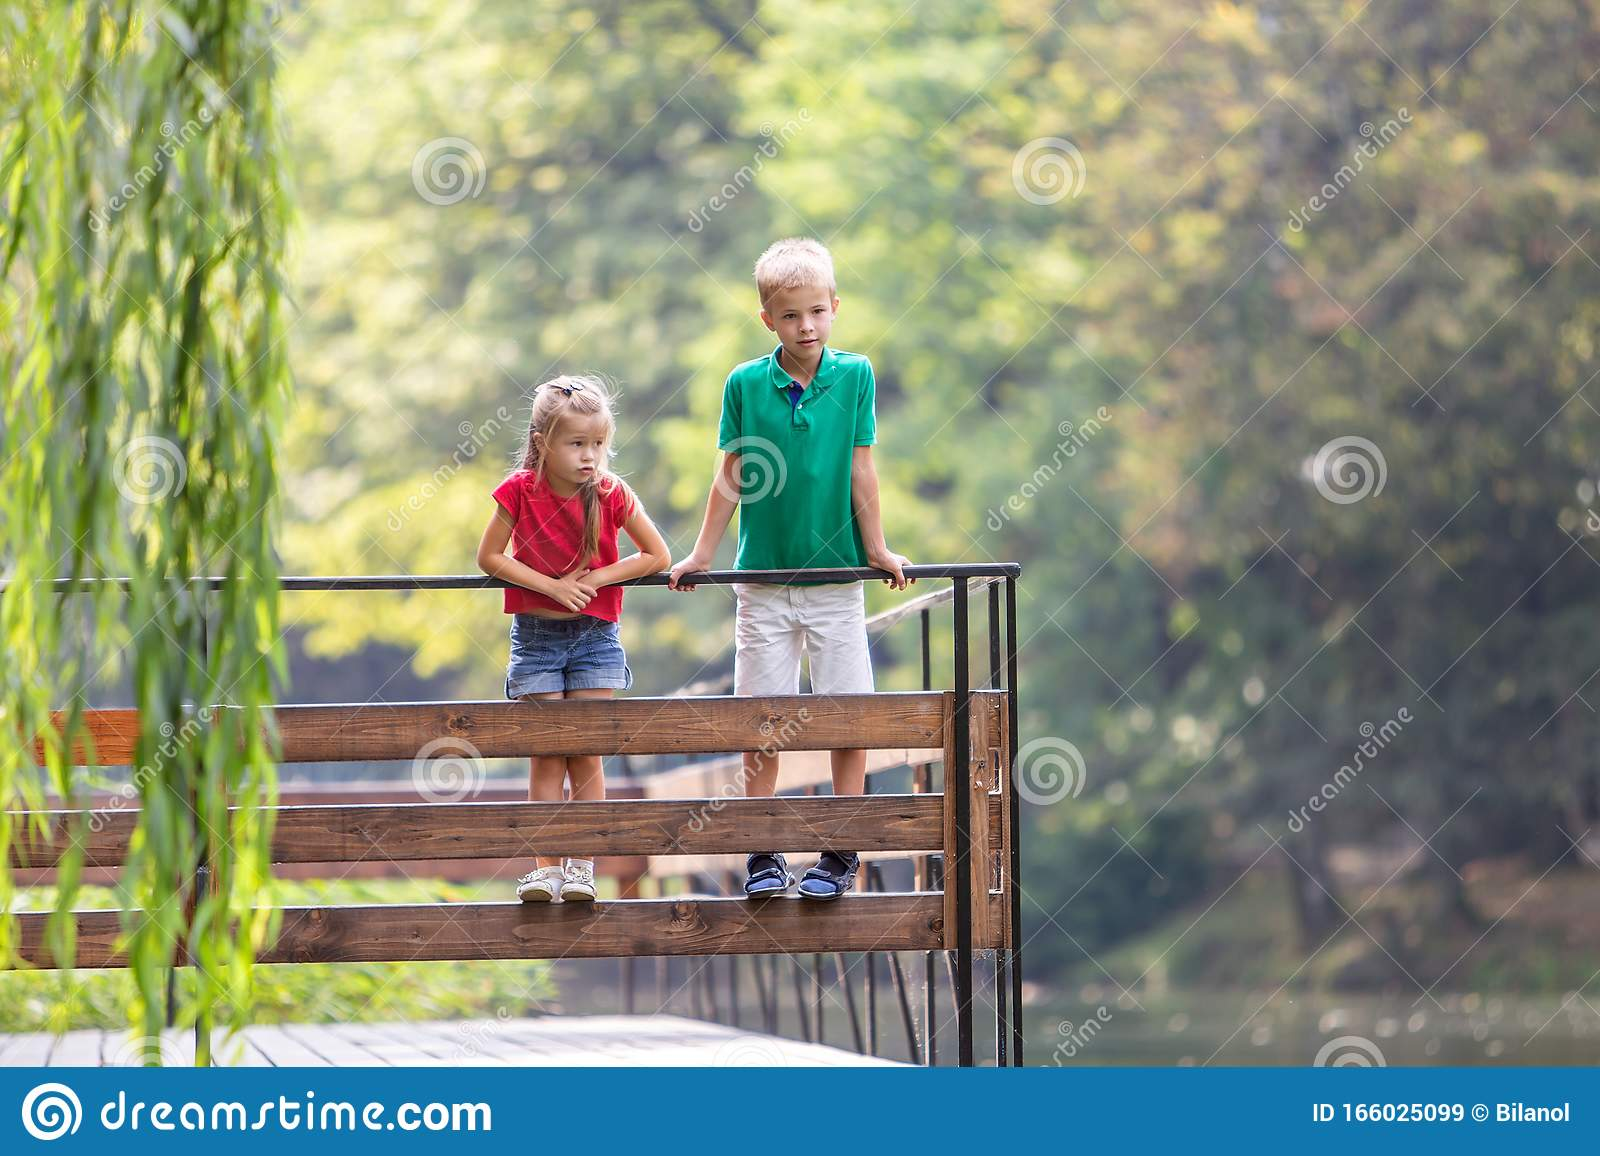 Two Children Boy And Girl Standing On Wooden Deck On A ...